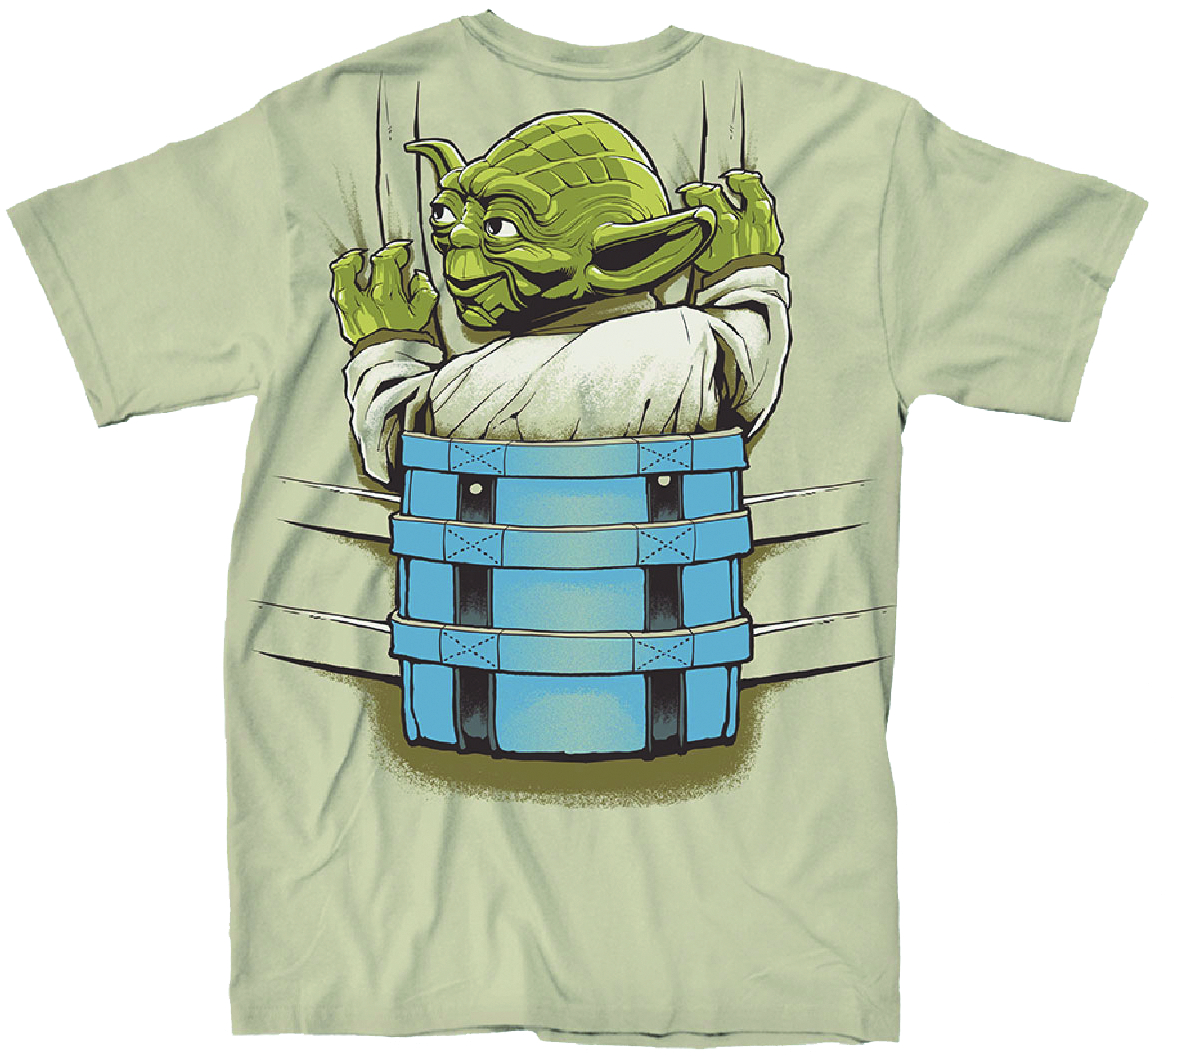 STAR WARS YODA BACKPACK PX SAND T/S XL